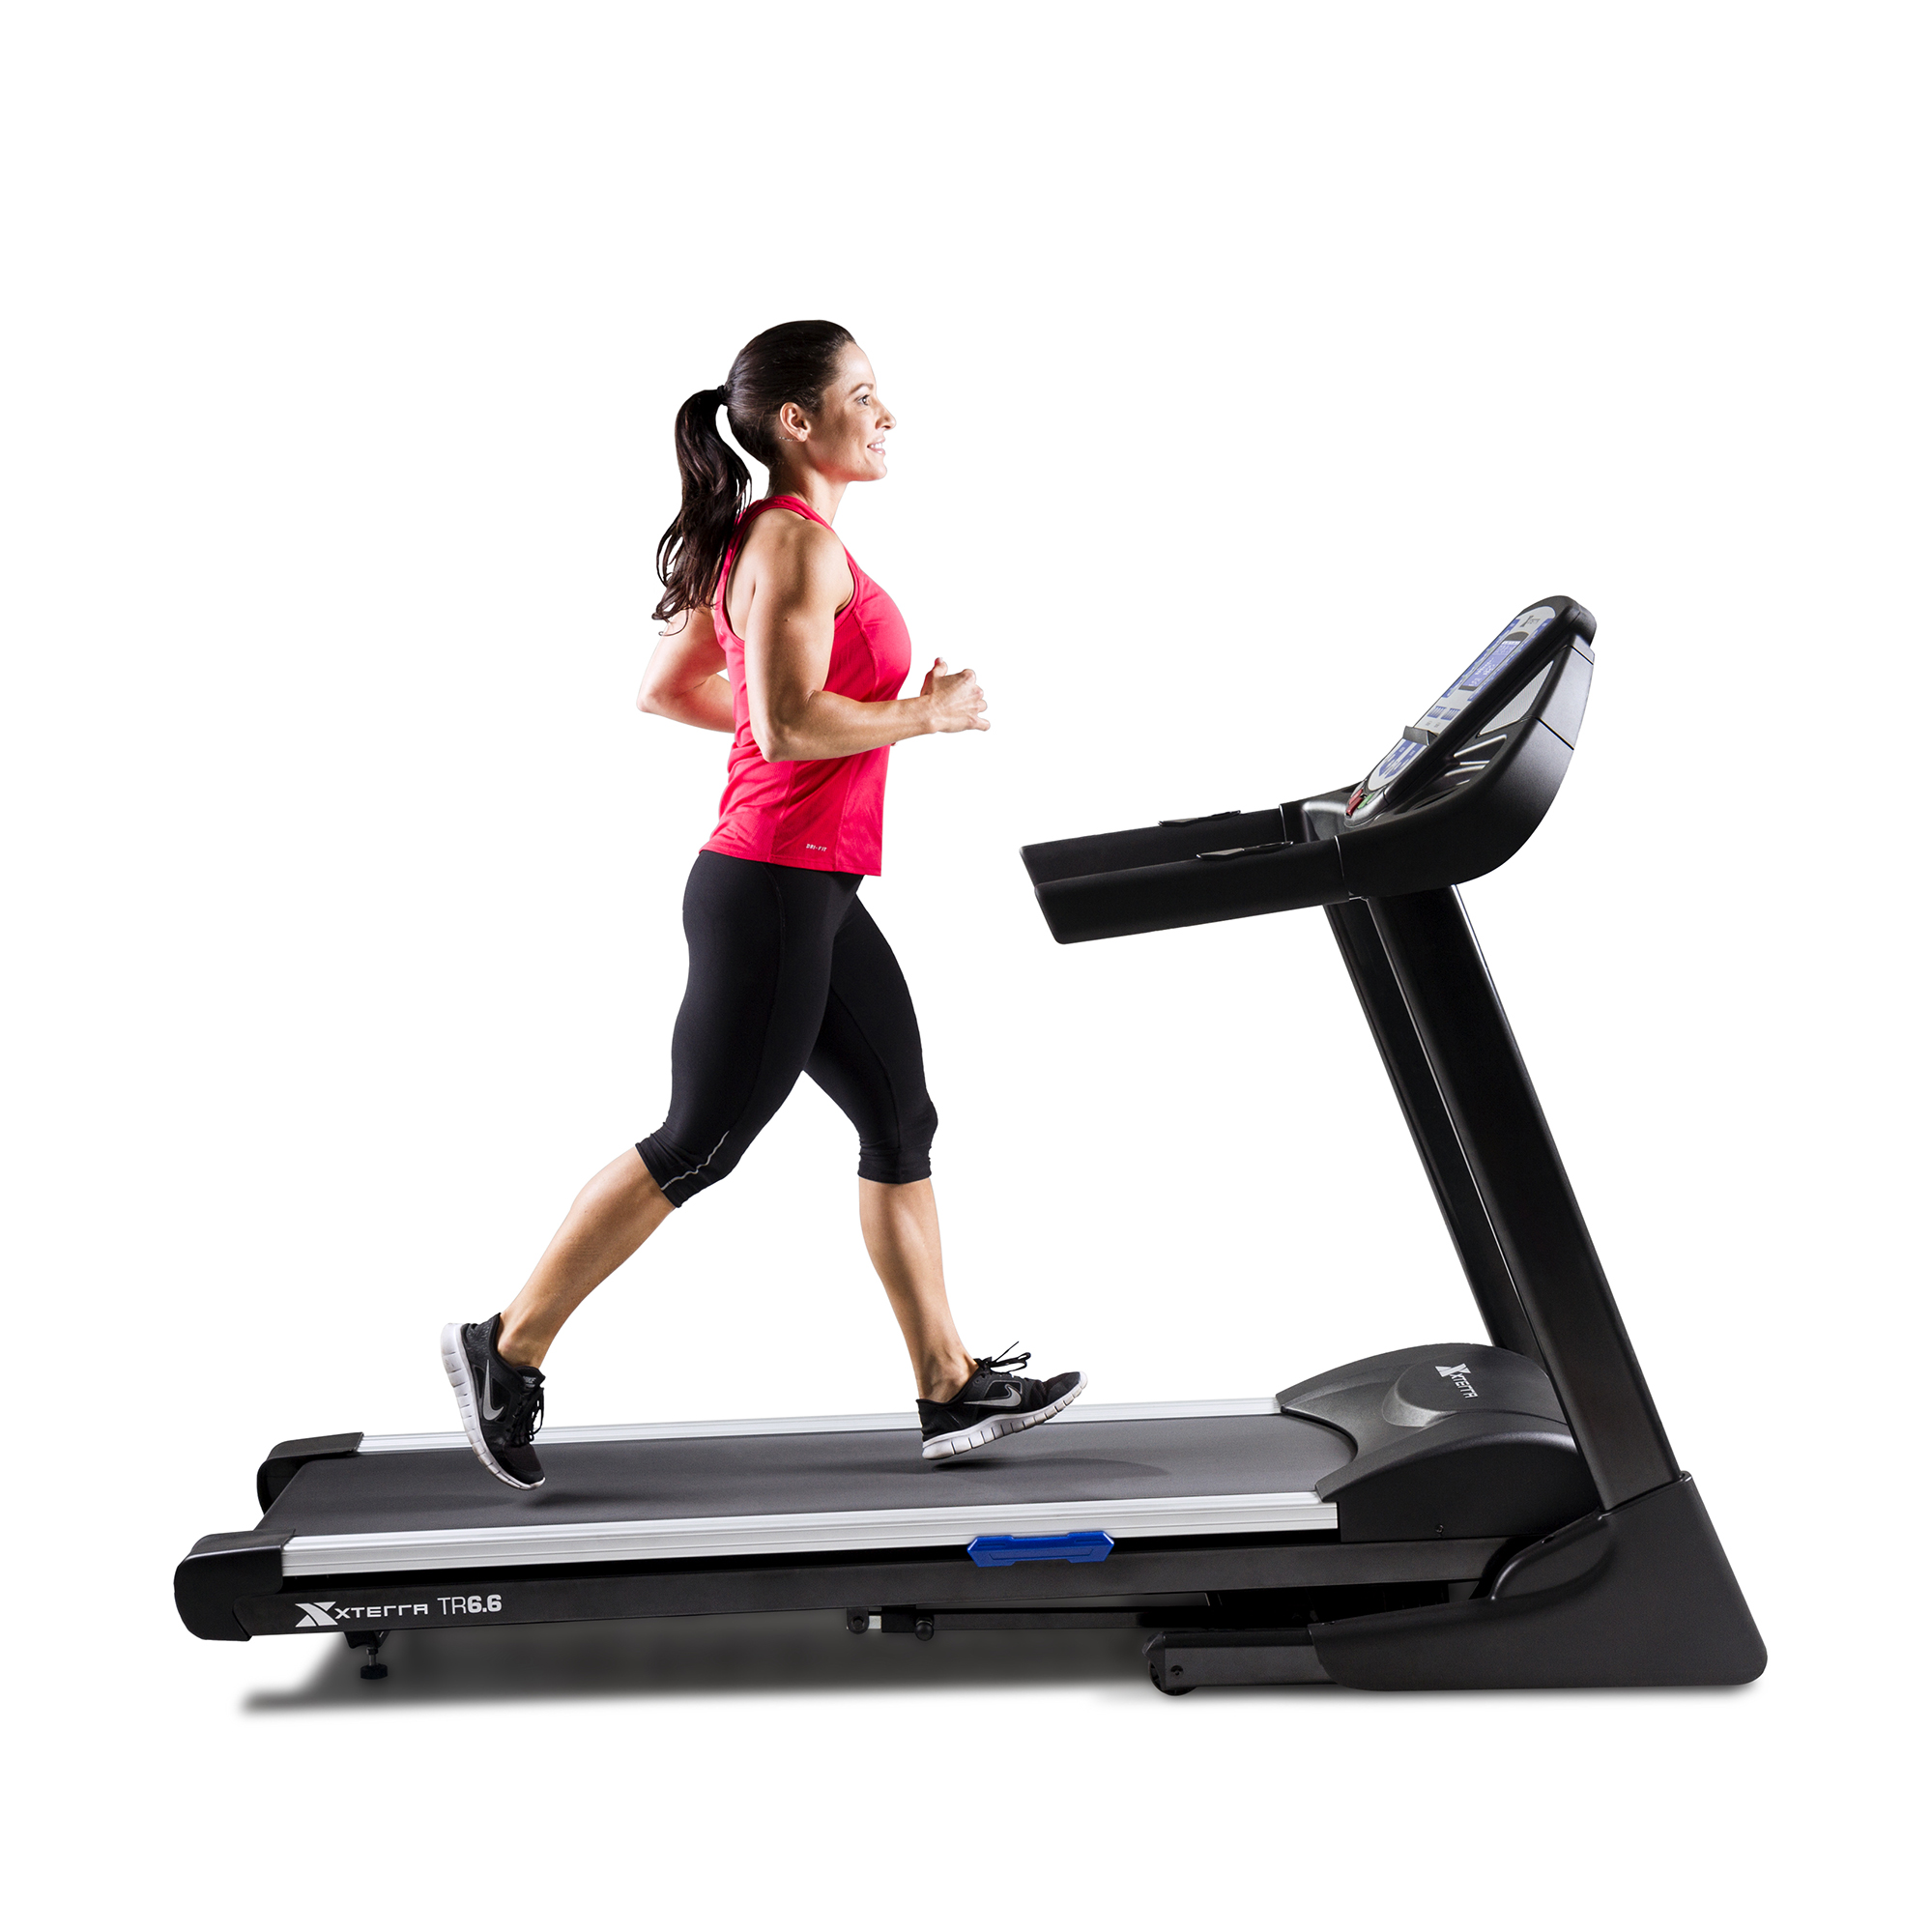 XTERRA Fitness TR6.6 Folding Treadmill with Heart Rate Chest Strap